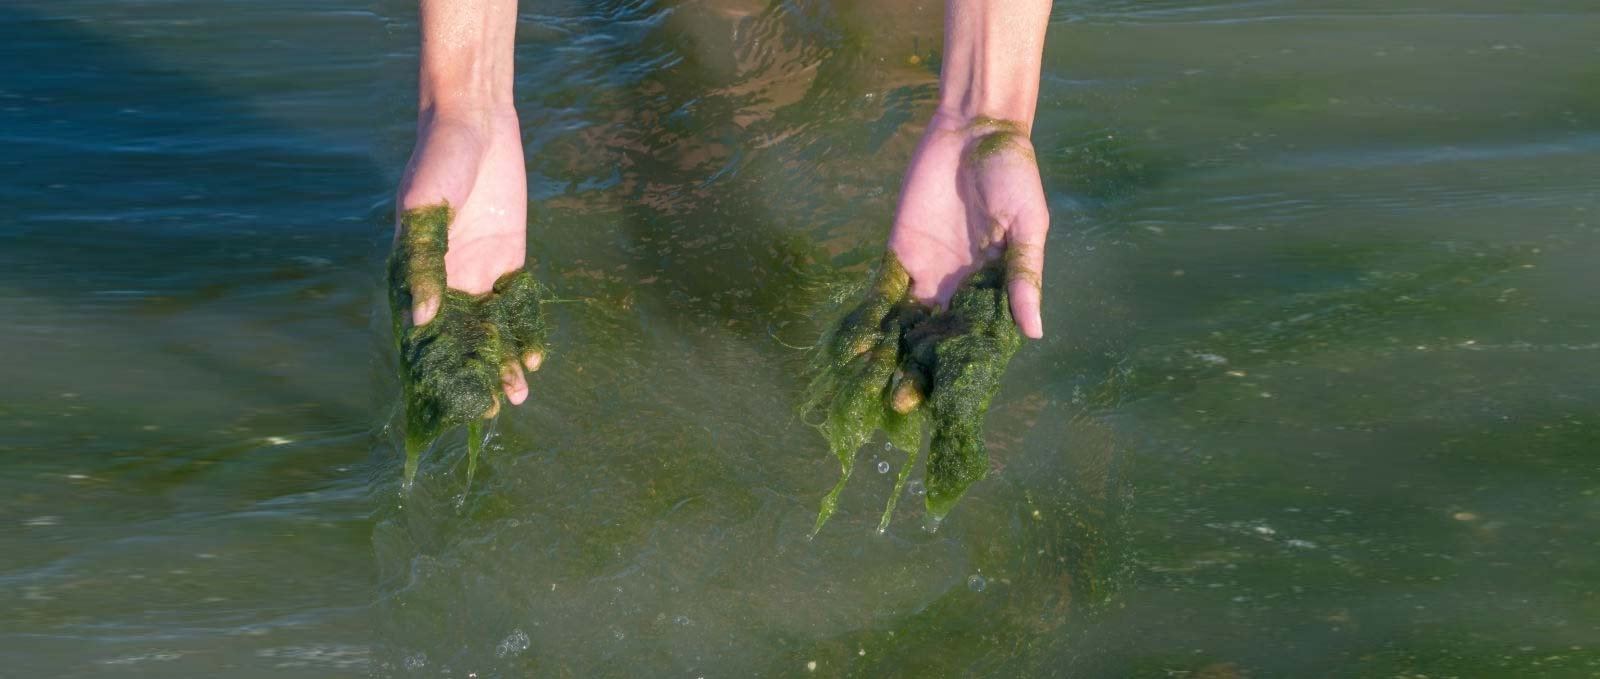 Pond algae on hands